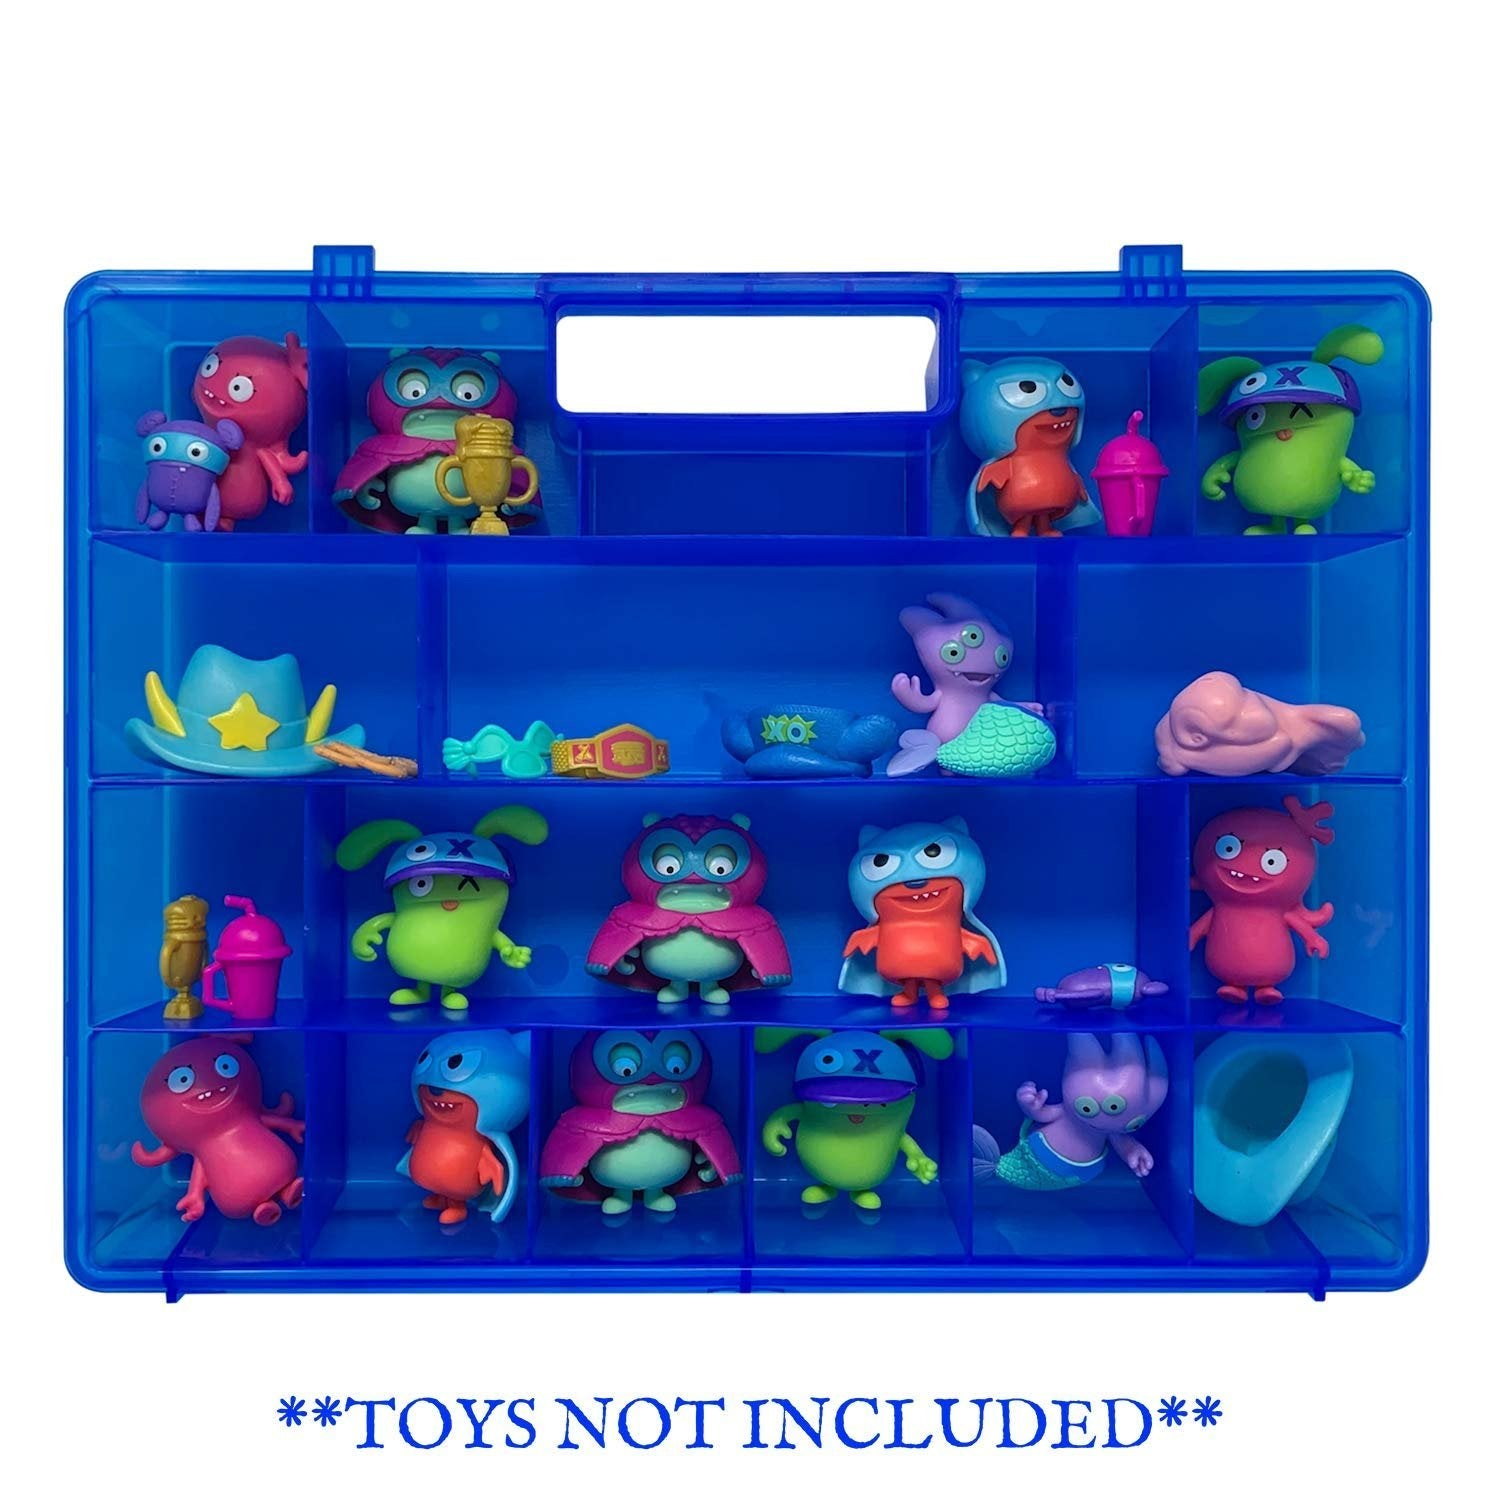 Life Made Better, Storage Case Play Box, Compatible with UglyDolls Figurines, Toy Travel Case for Kids, Toy Accessories for Children Created by LMB